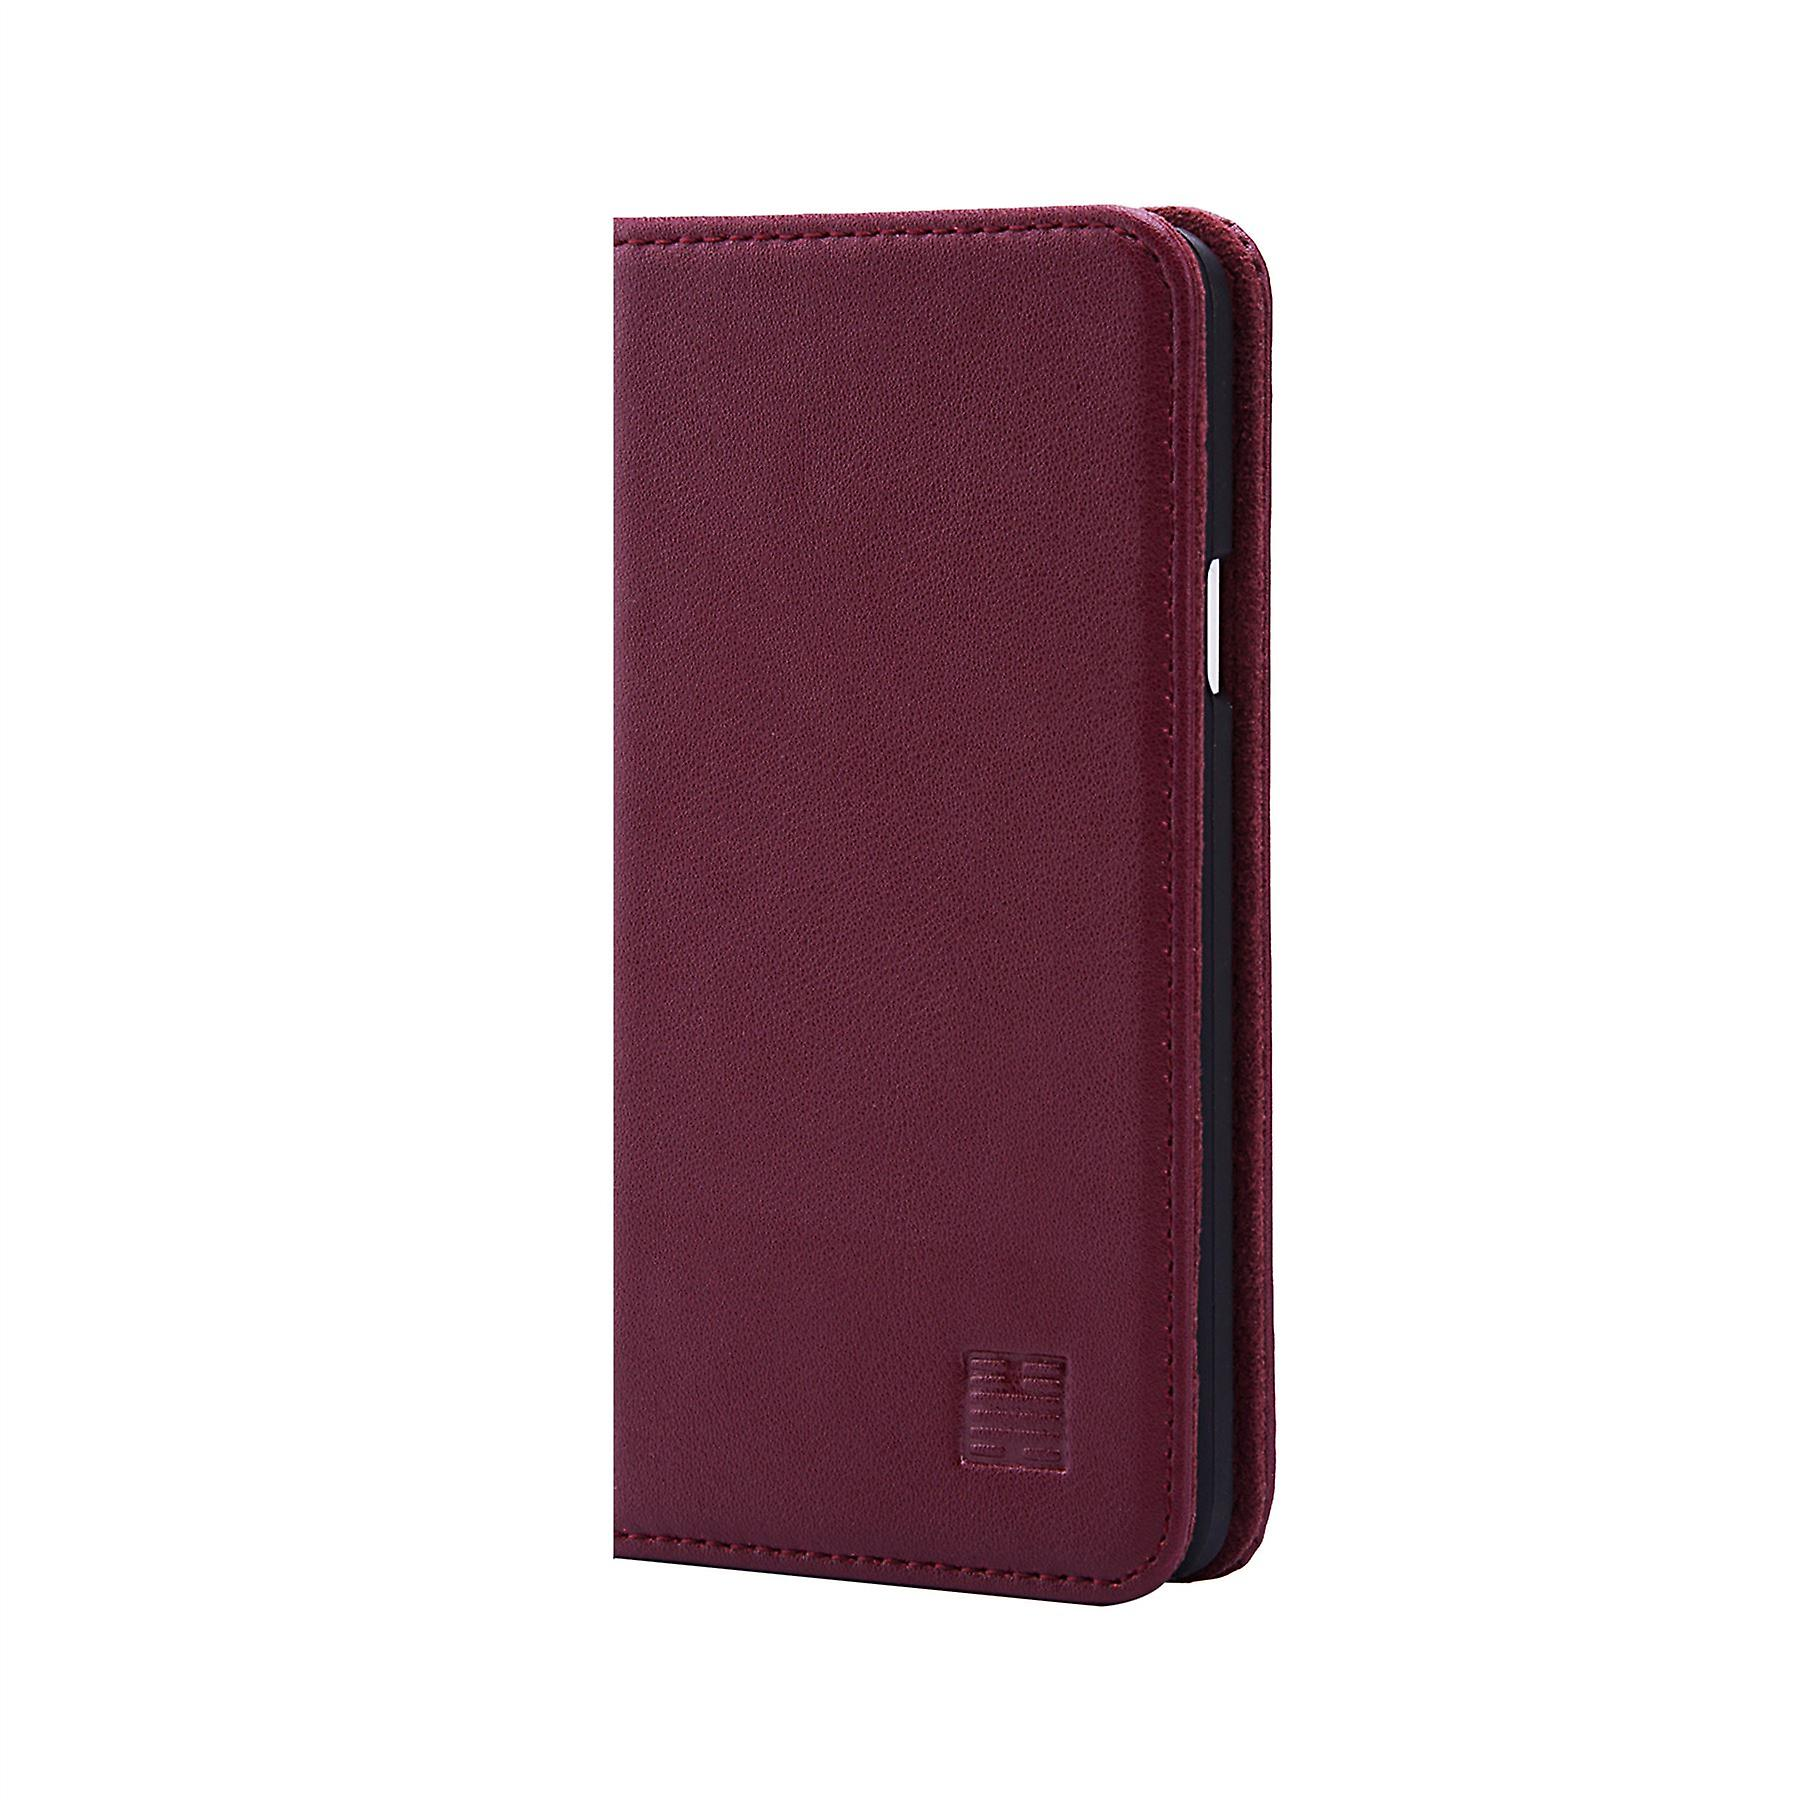 32nd Classic Real Leather Wallet for Samsung Galaxy A5 (2017) - Burgundy